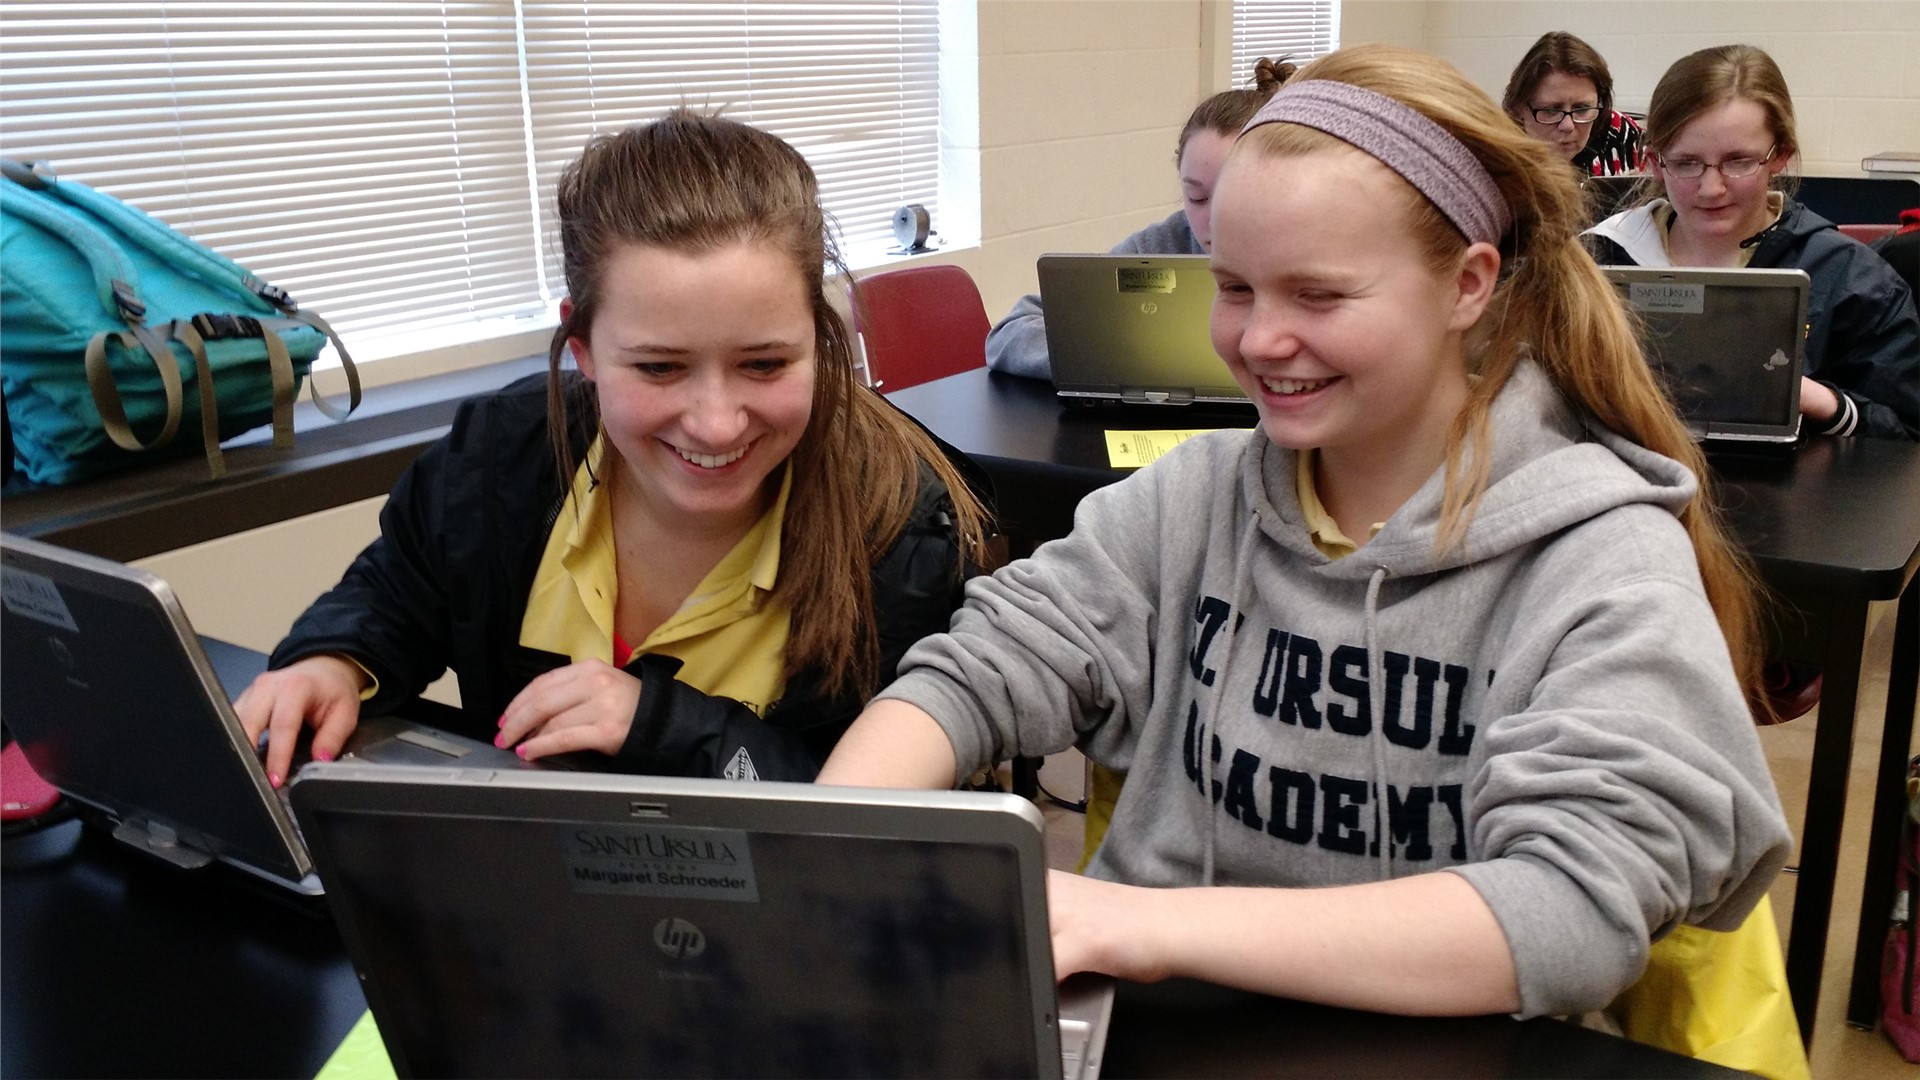 SUA students compete in TechOlympics sponsored by local corporations